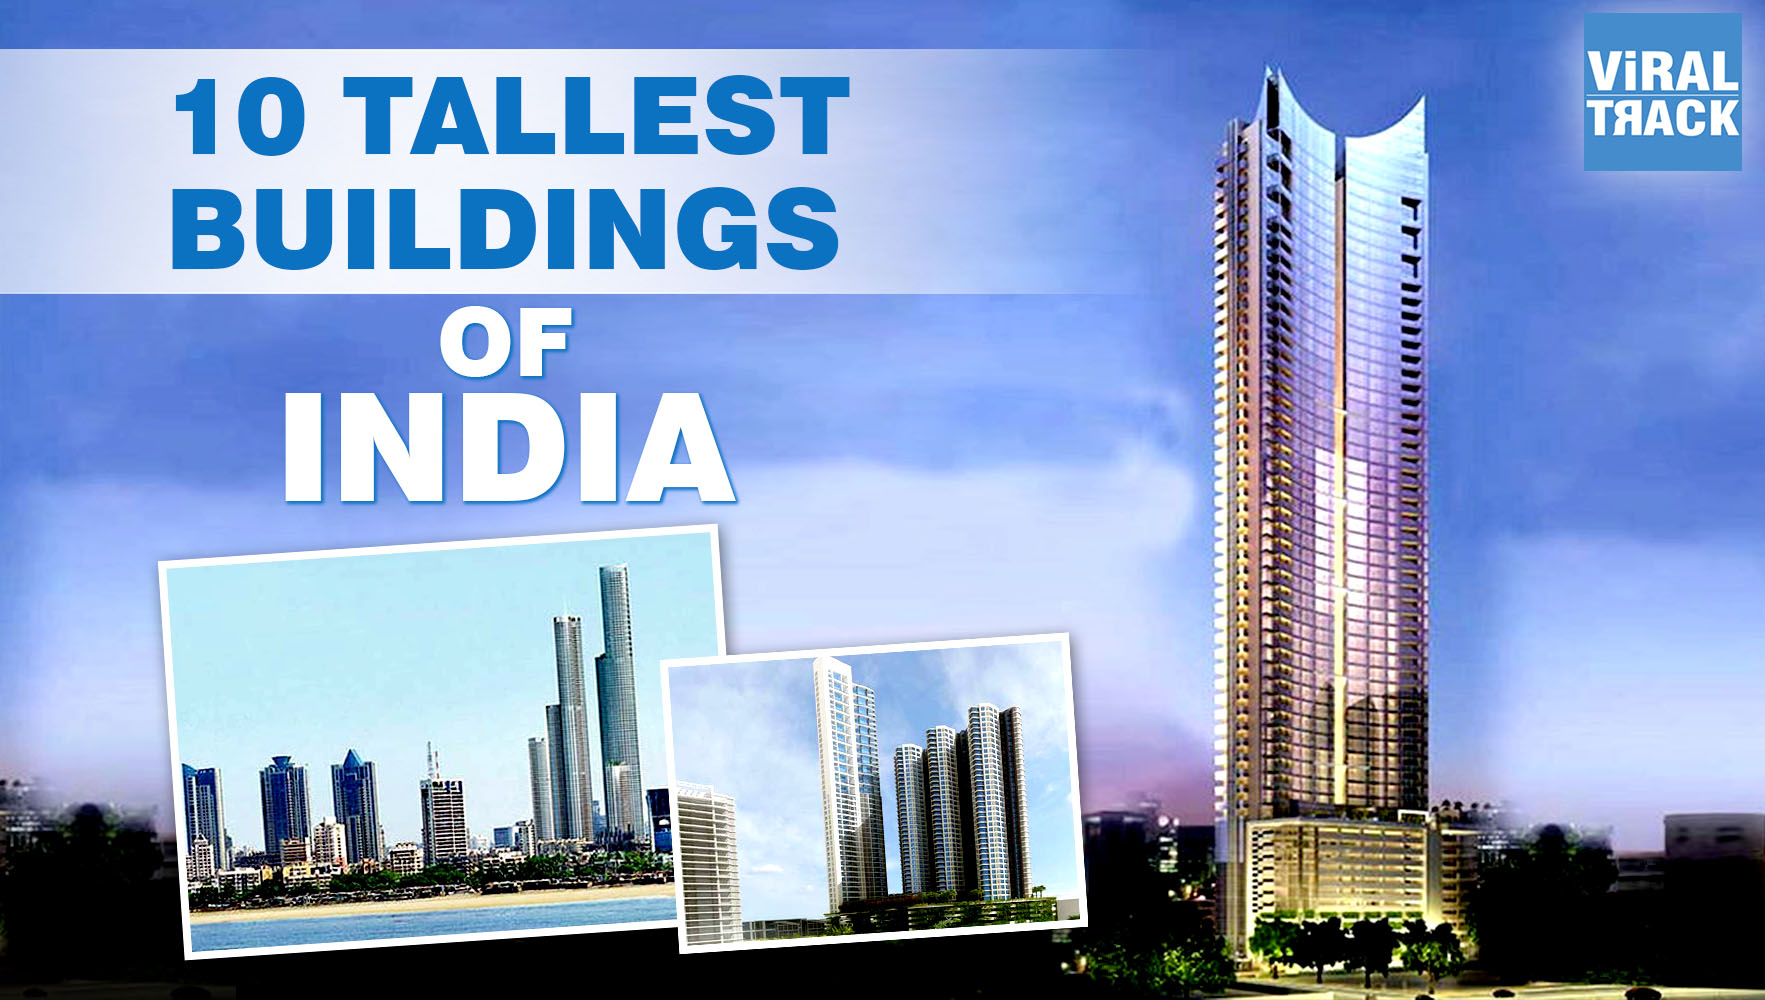 10 tallest buildings of india